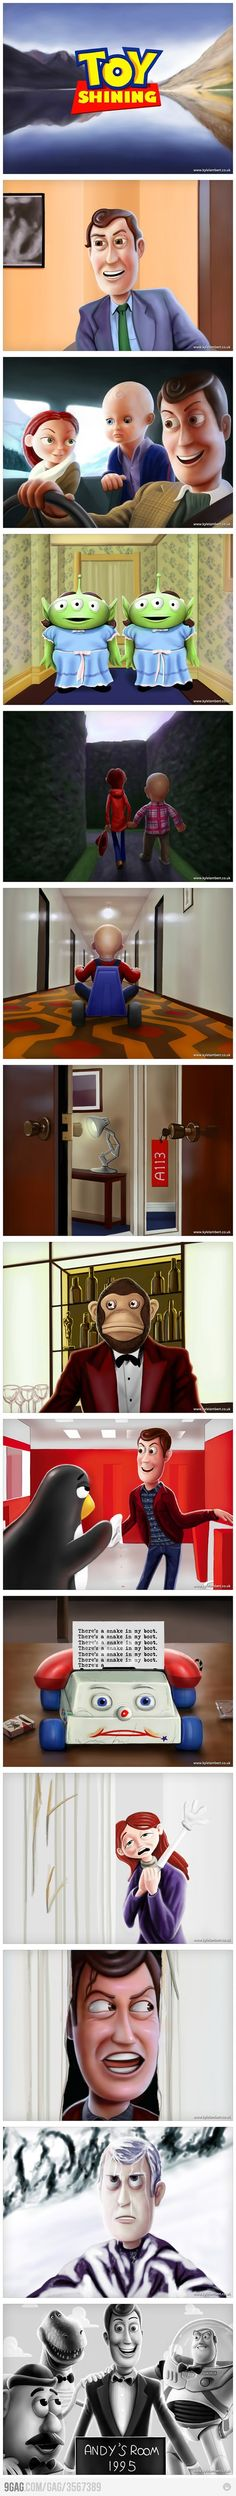 Toy Story + The Shining= Toy Shining